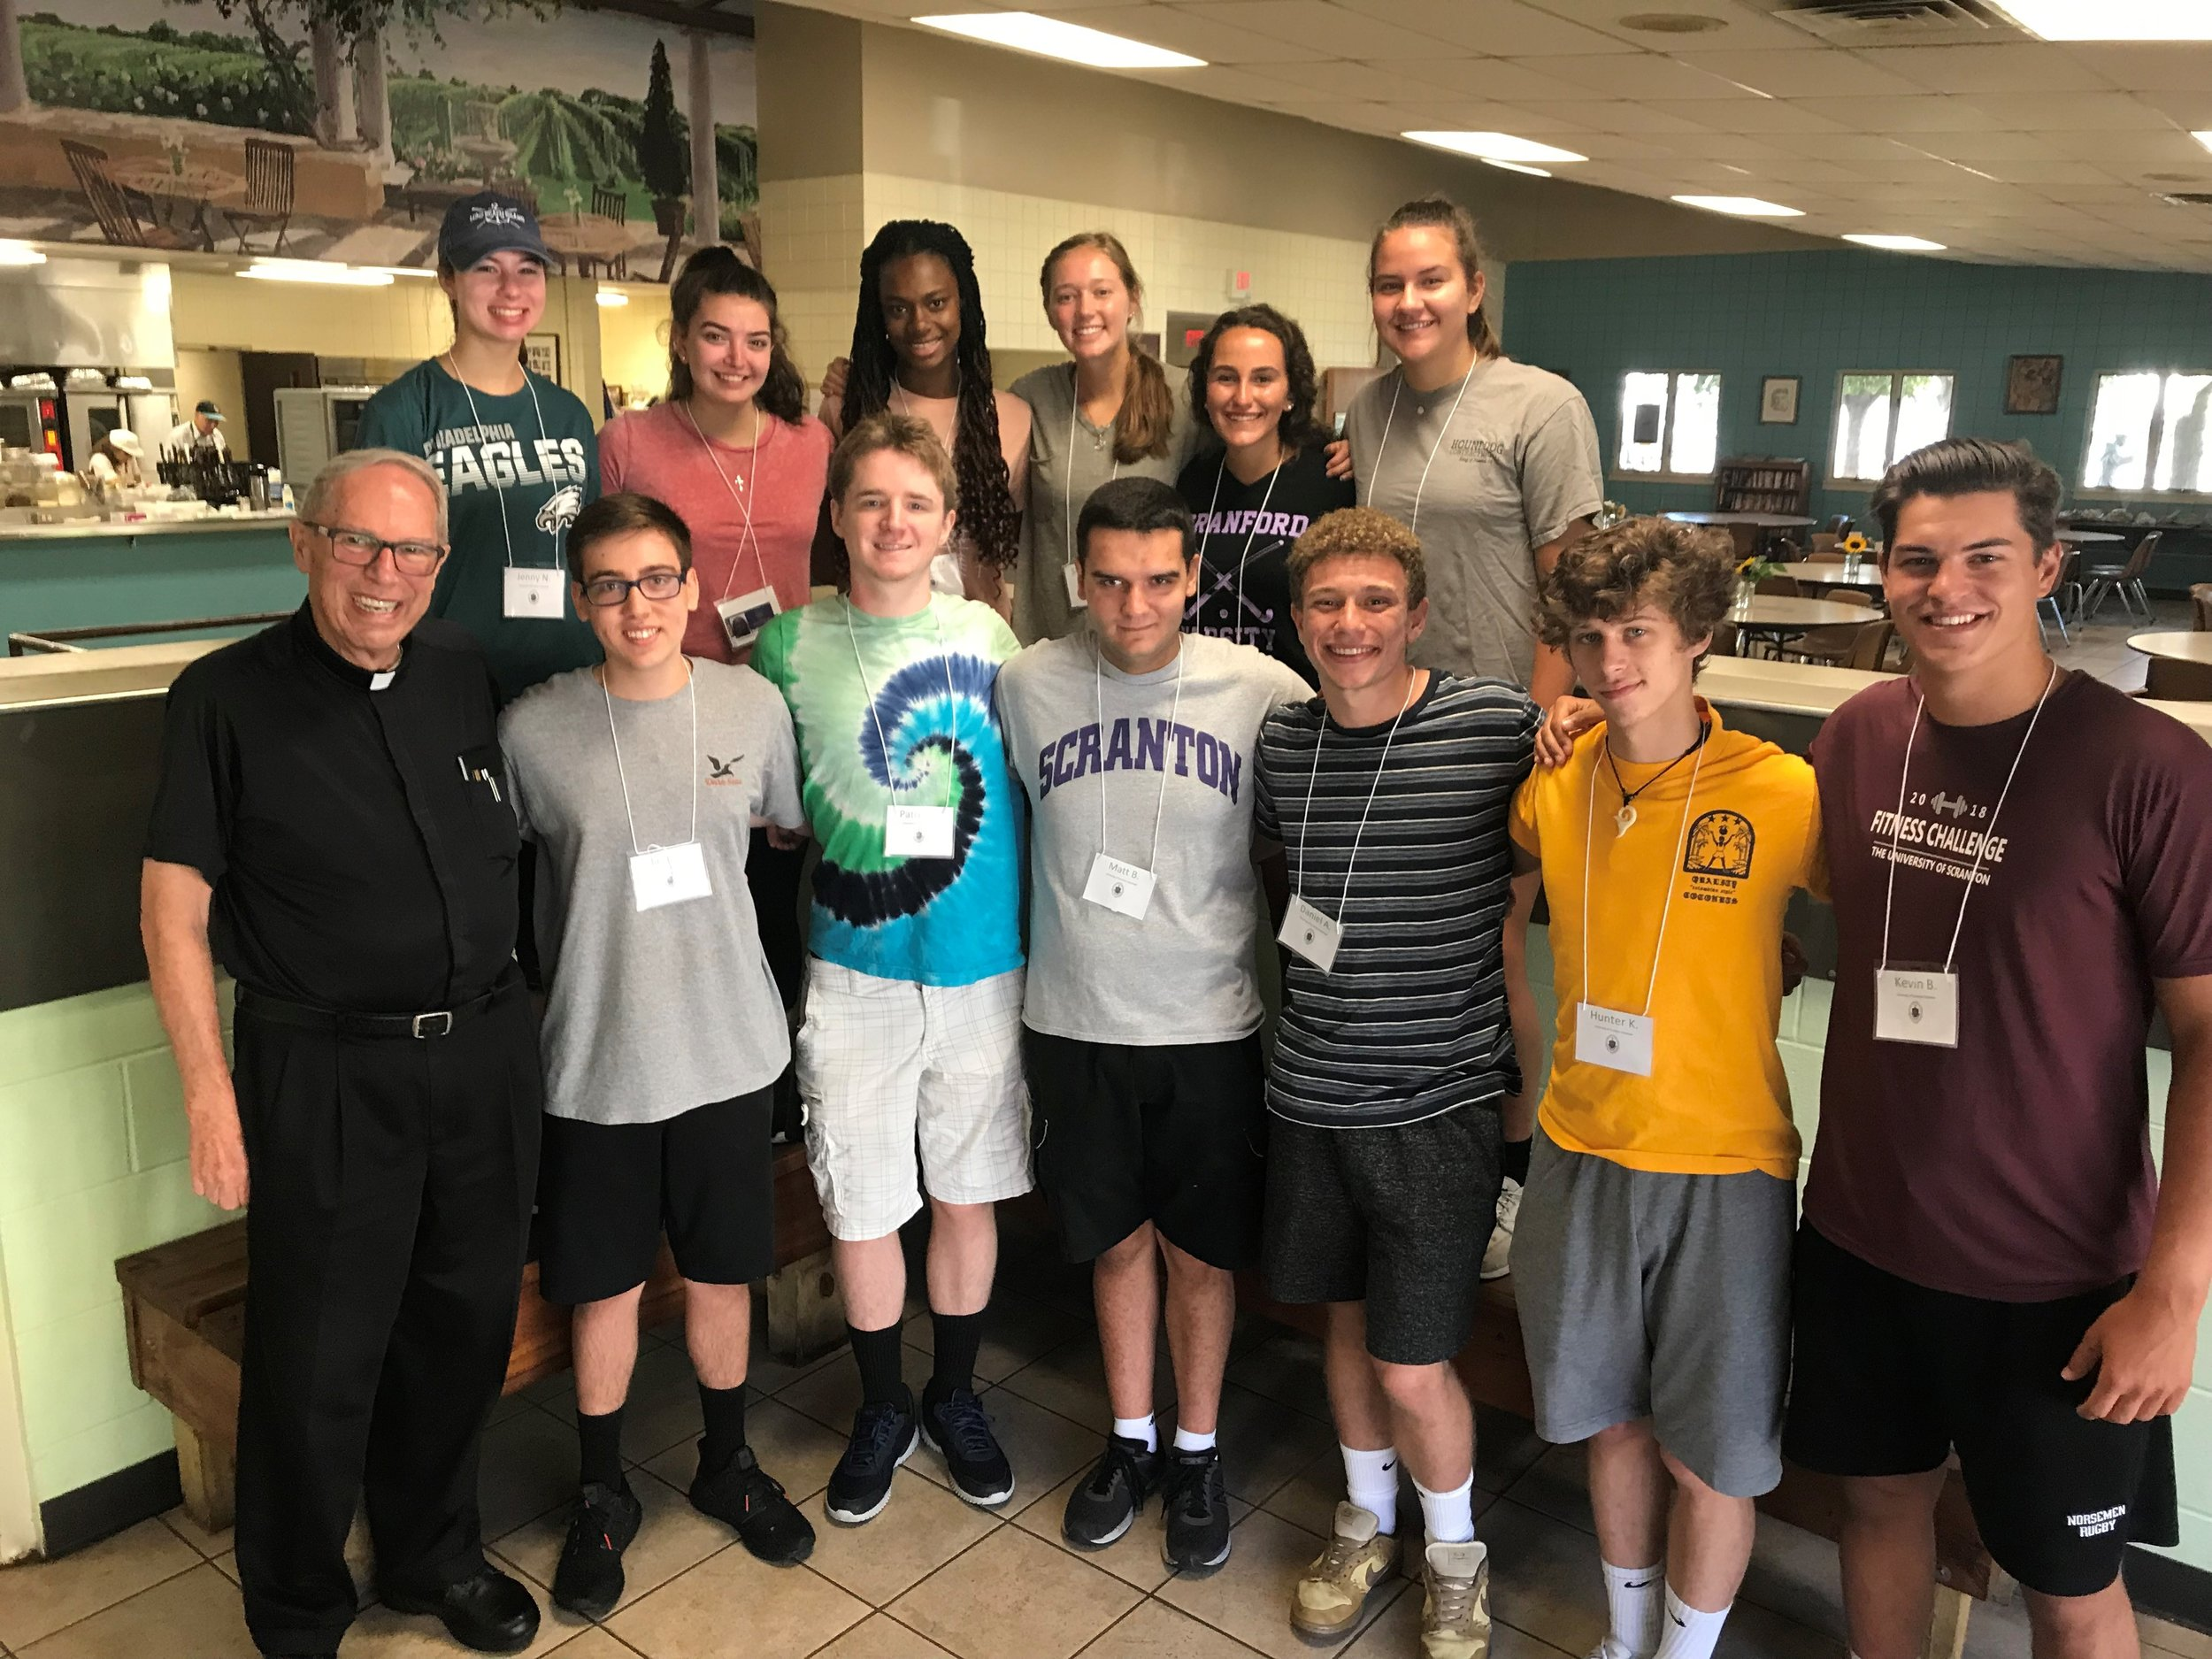 Students in The University of Scranton's FIRST Program (Freshmen Involved in Reflective Service Together) volunteered at the St. Francis of Assisi Client-Choice Food Pantry in Scranton, PA (photo by The University of Scranton)